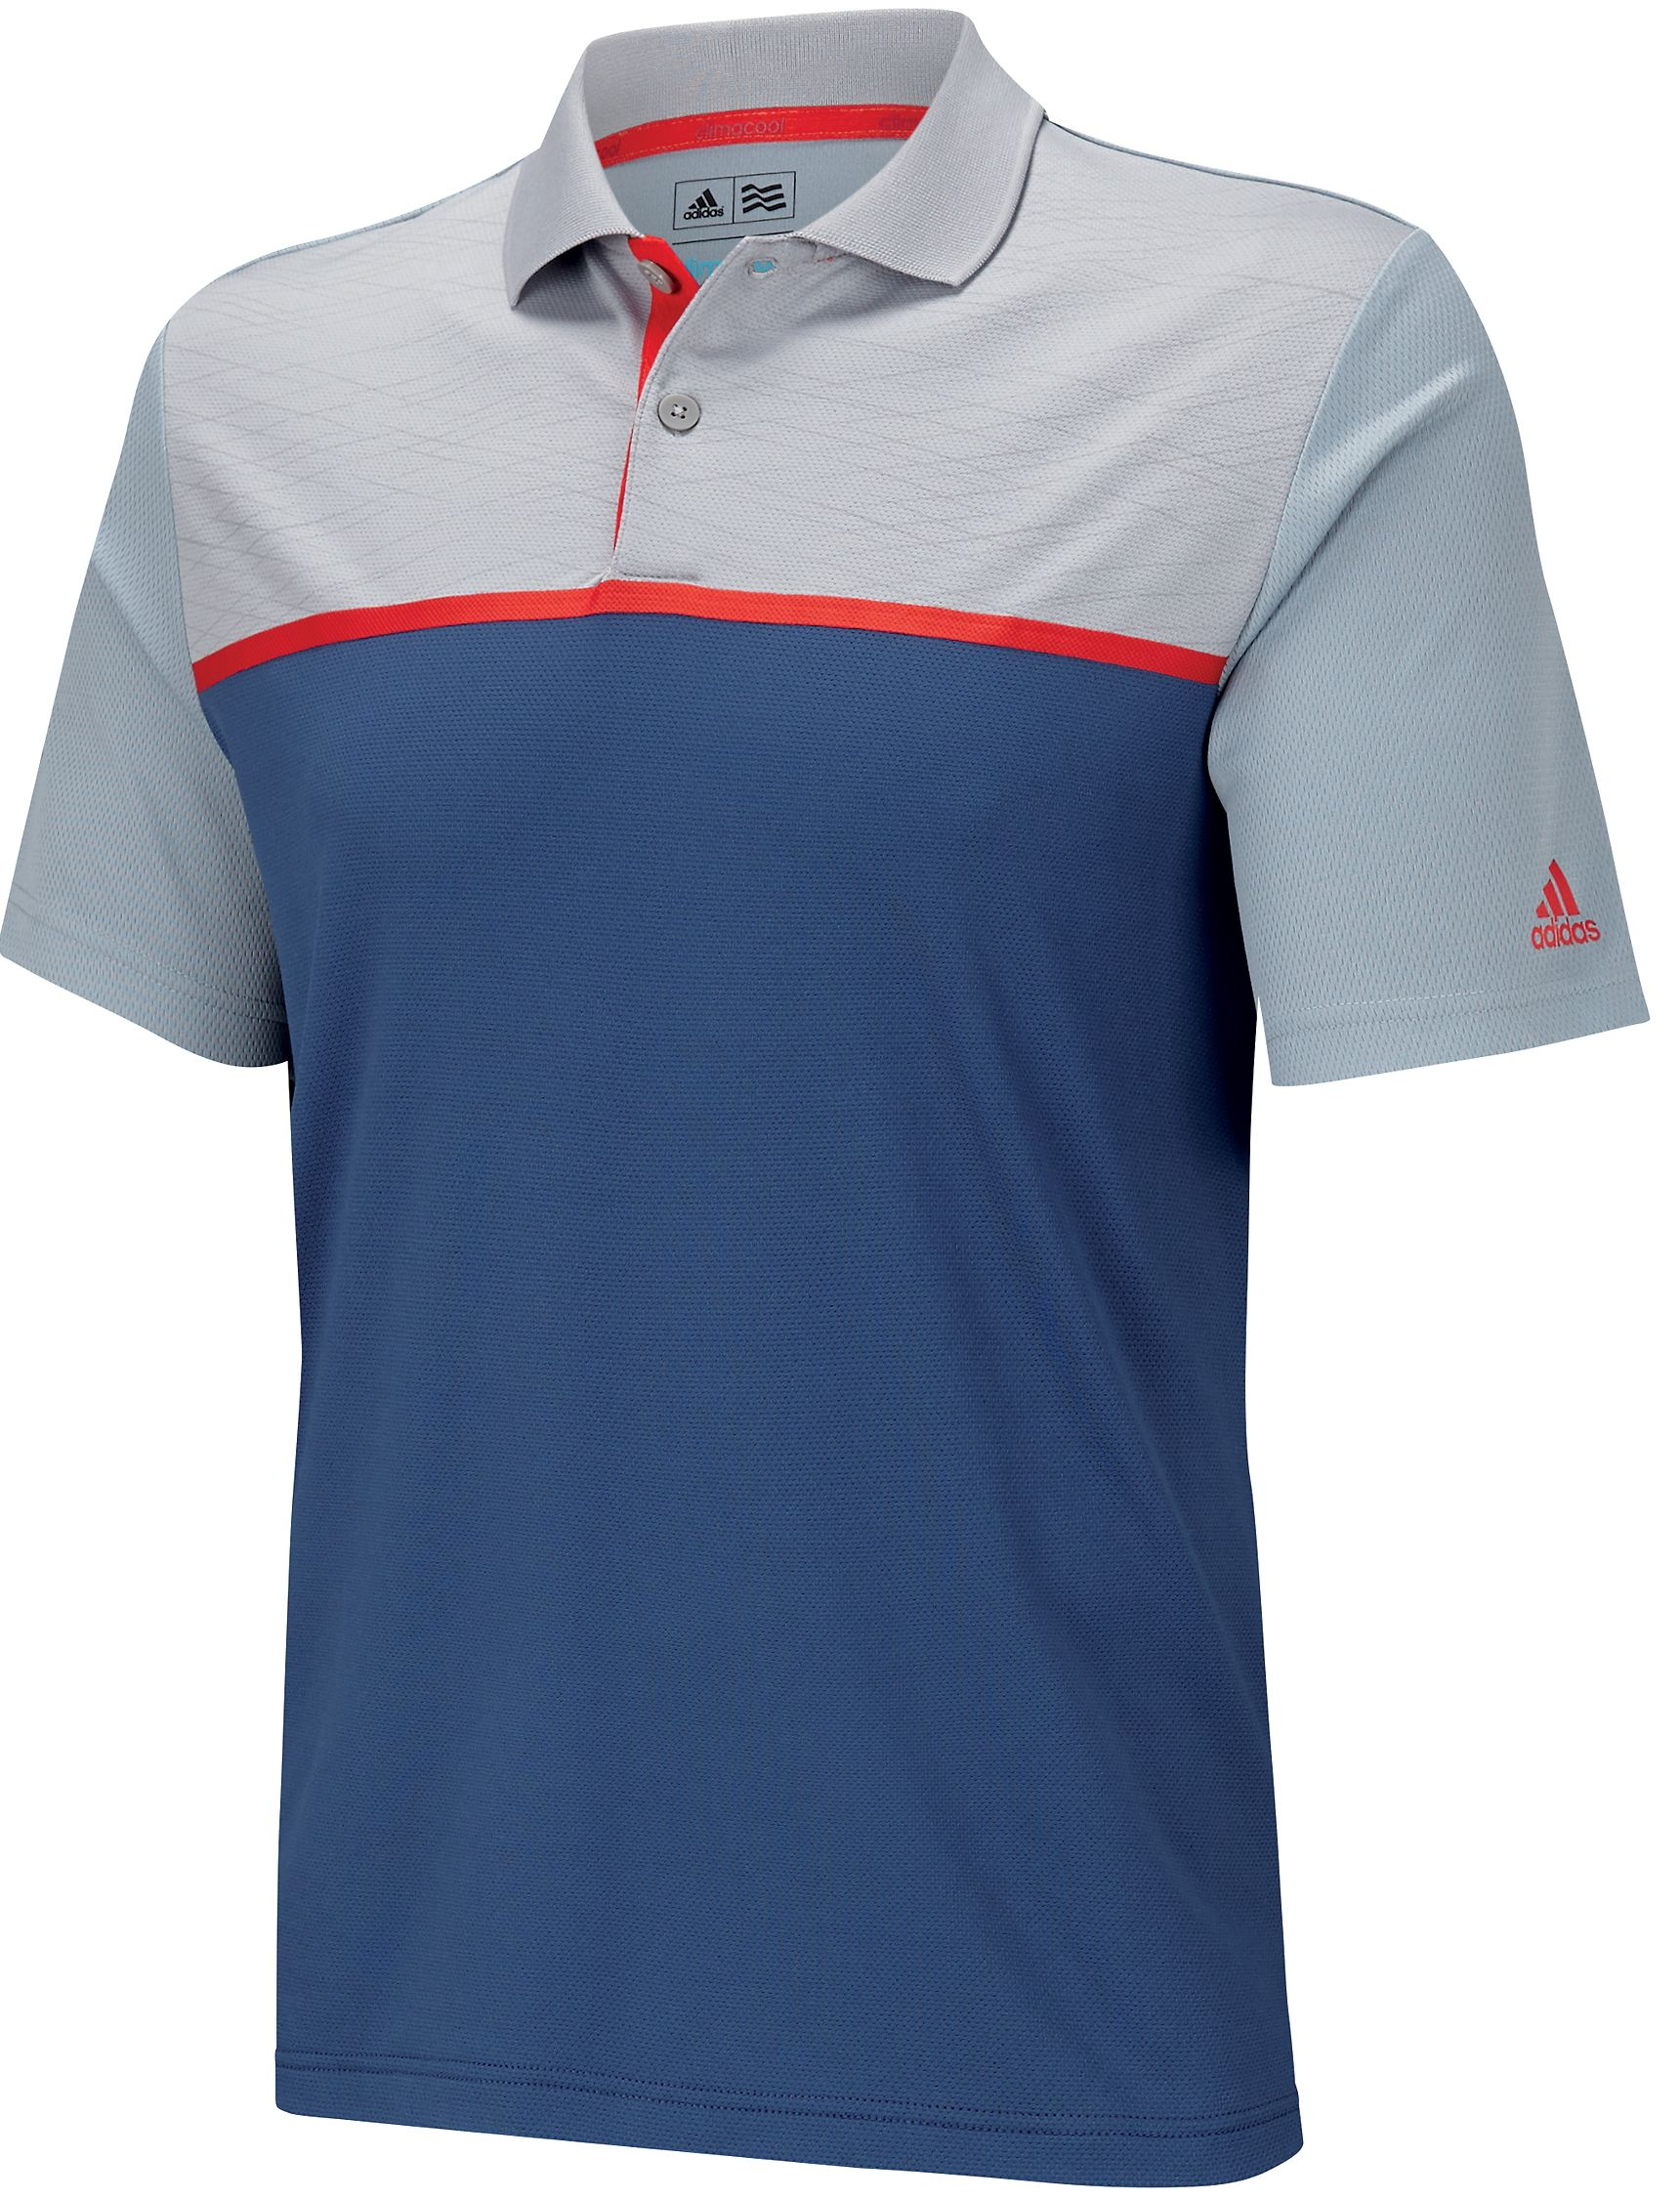 Adidas Golf ClimaCool Energy Colorblock Polo Golf Shirt 2015 Closeouts Mens   70334ac2eb579